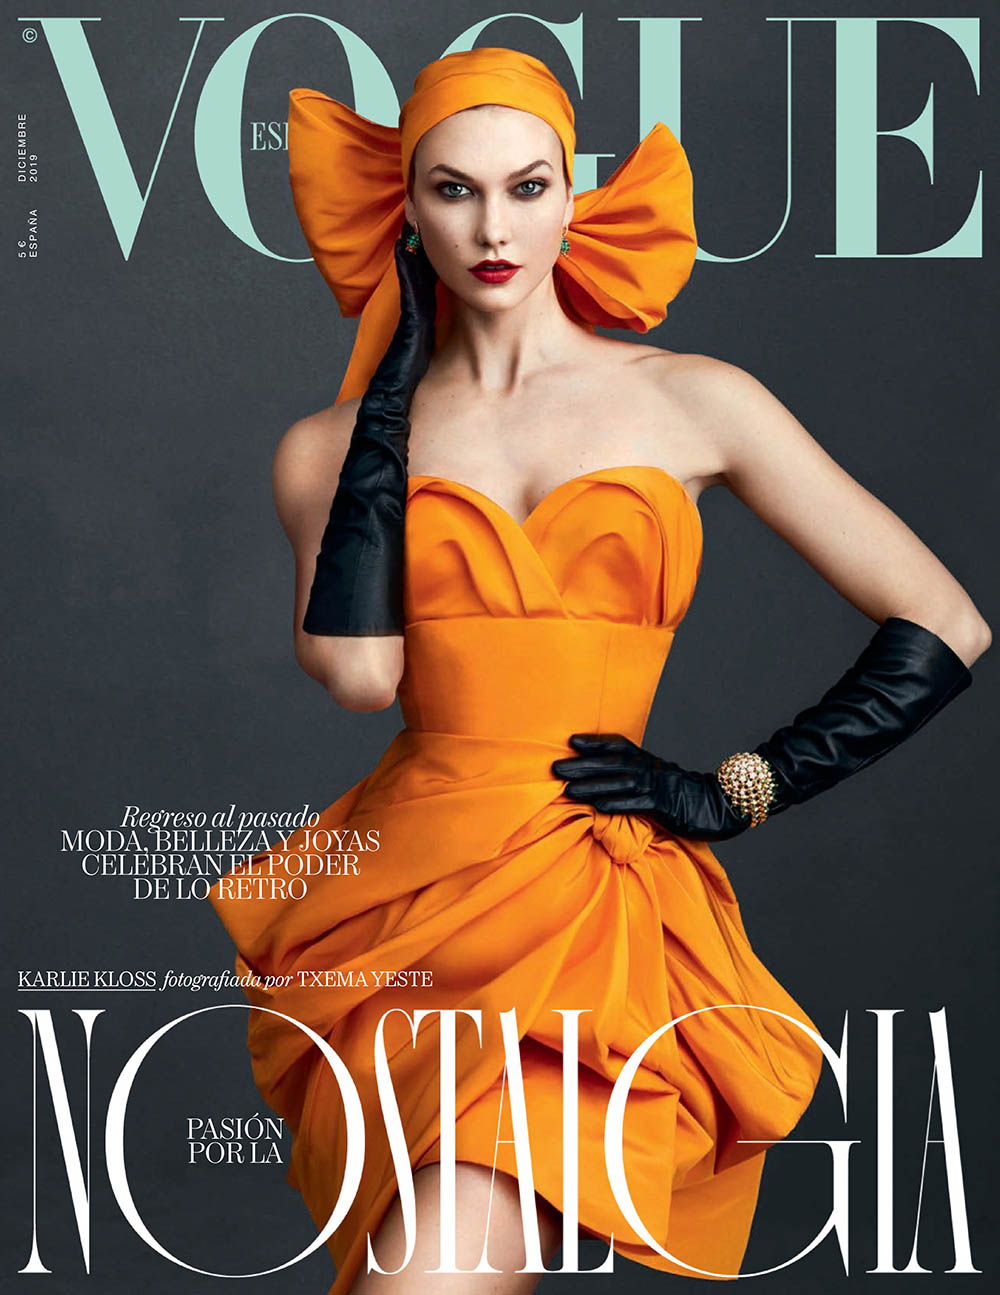 Karlie Kloss covers Vogue Spain December 2019 by Txema Yeste